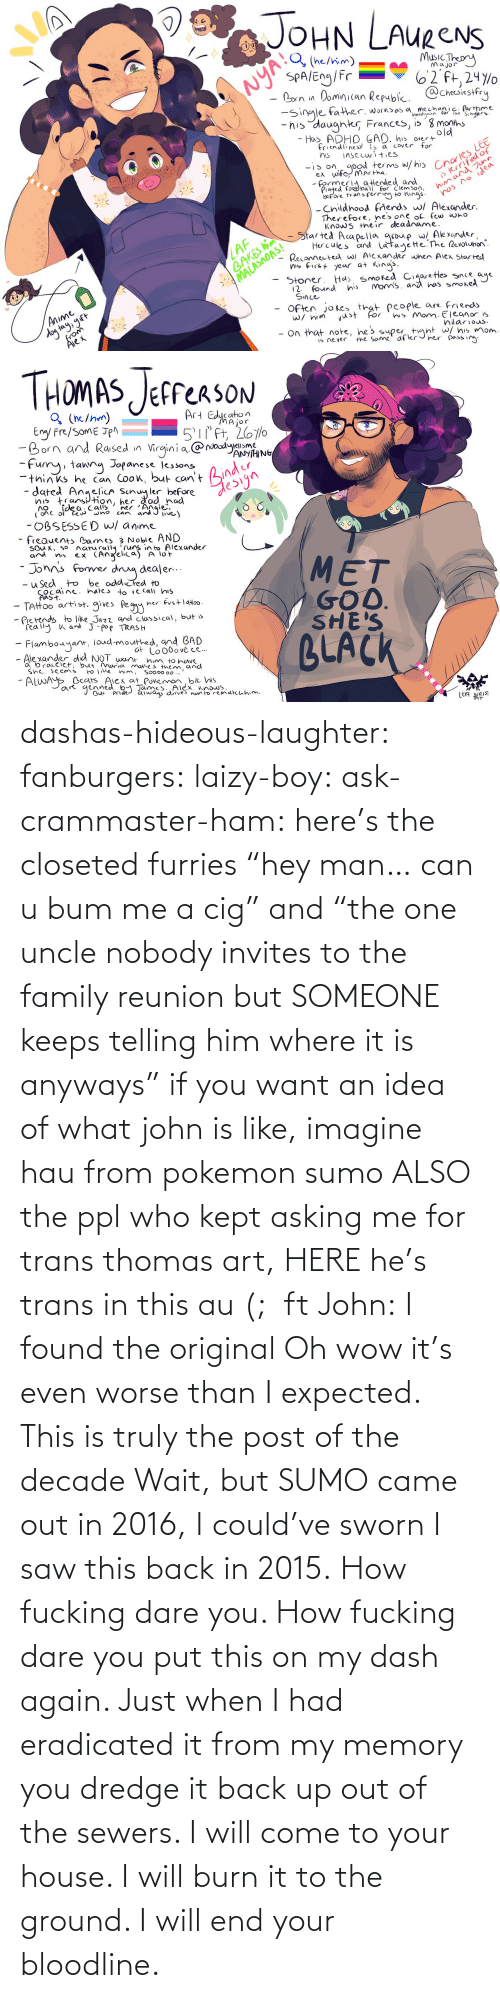 "Asking: dashas-hideous-laughter:  fanburgers:   laizy-boy:   ask-crammaster-ham:   here's the closeted furries ""hey man… can u bum me a cig"" and ""the one uncle nobody invites to the family reunion but SOMEONE keeps telling him where it is anyways""   if you want an idea of what john is like, imagine hau from pokemon sumo ALSO the ppl who kept asking me for trans thomas art, HERE he's trans in this au (;  ft John:    I found the original     Oh wow it's even worse than I expected. This is truly the post of the decade    Wait, but SUMO came out in 2016, I could've sworn I saw this back in 2015.    How fucking dare you. How fucking dare you put this on my dash again. Just when I had eradicated it from my memory you dredge it back up out of the sewers. I will come to your house. I will burn it to the ground. I will end your bloodline."